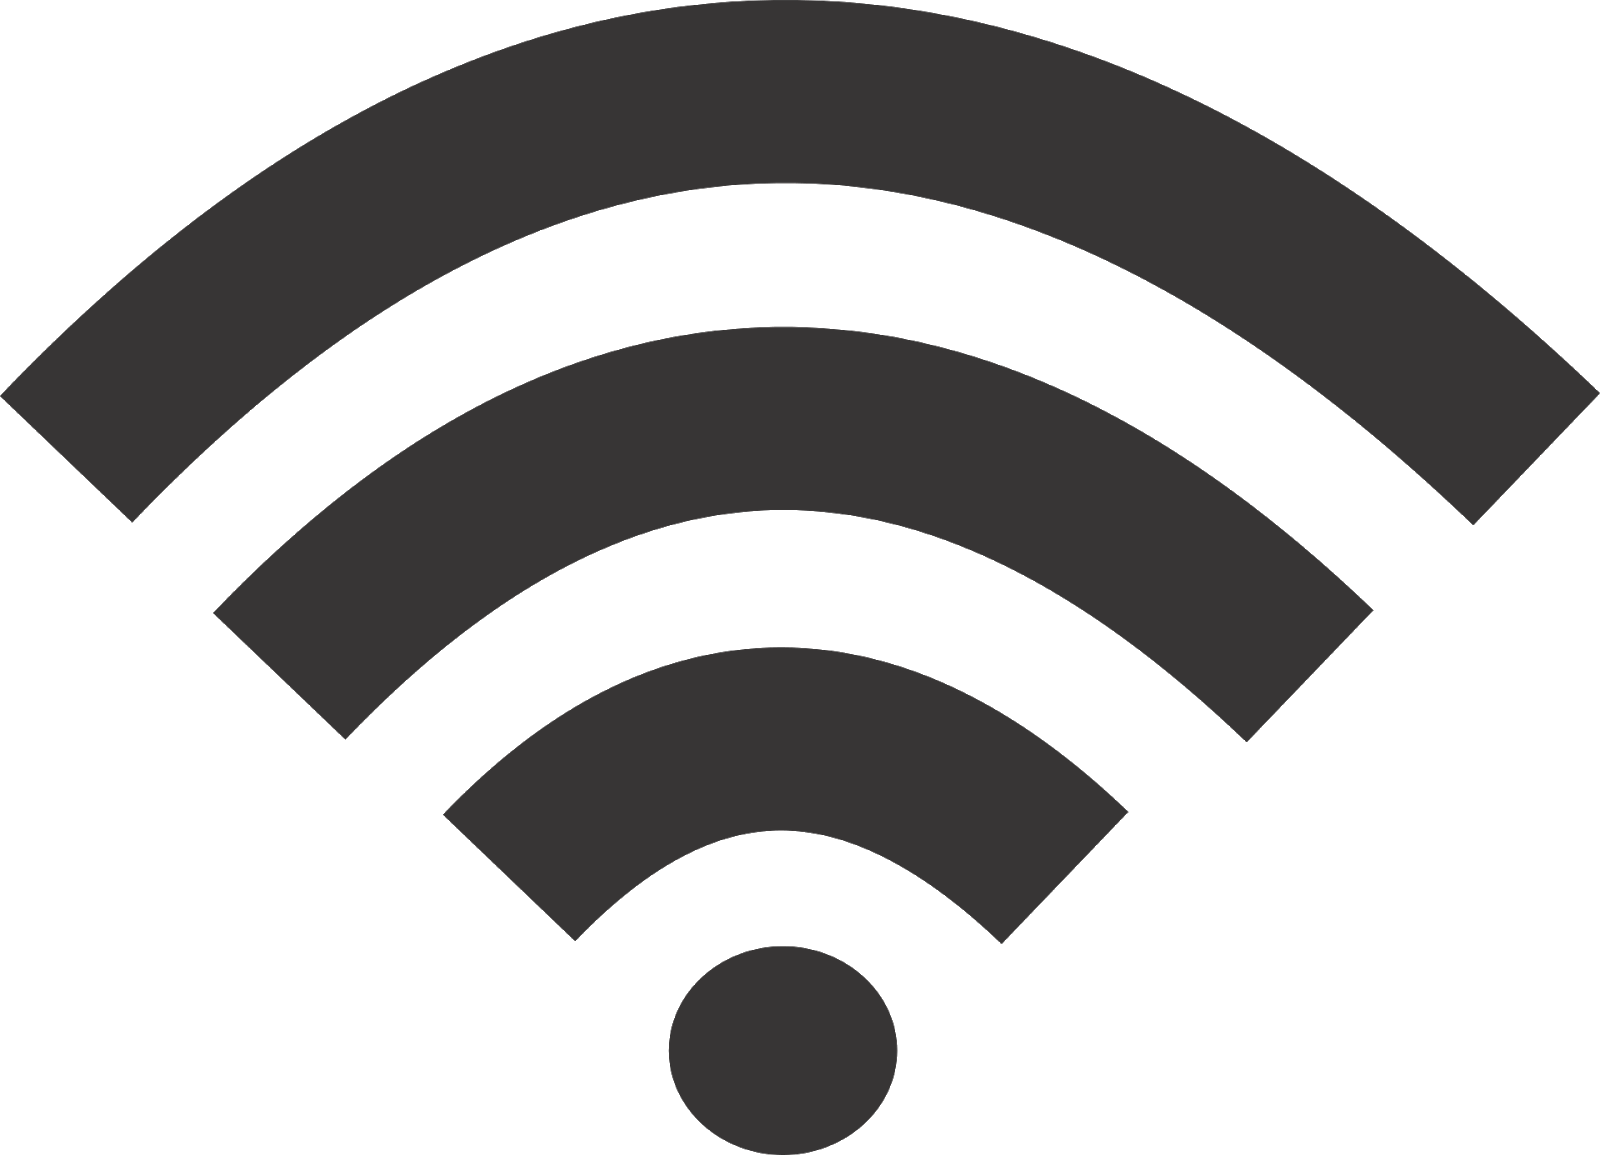 Phonestrick: How to secure wifi